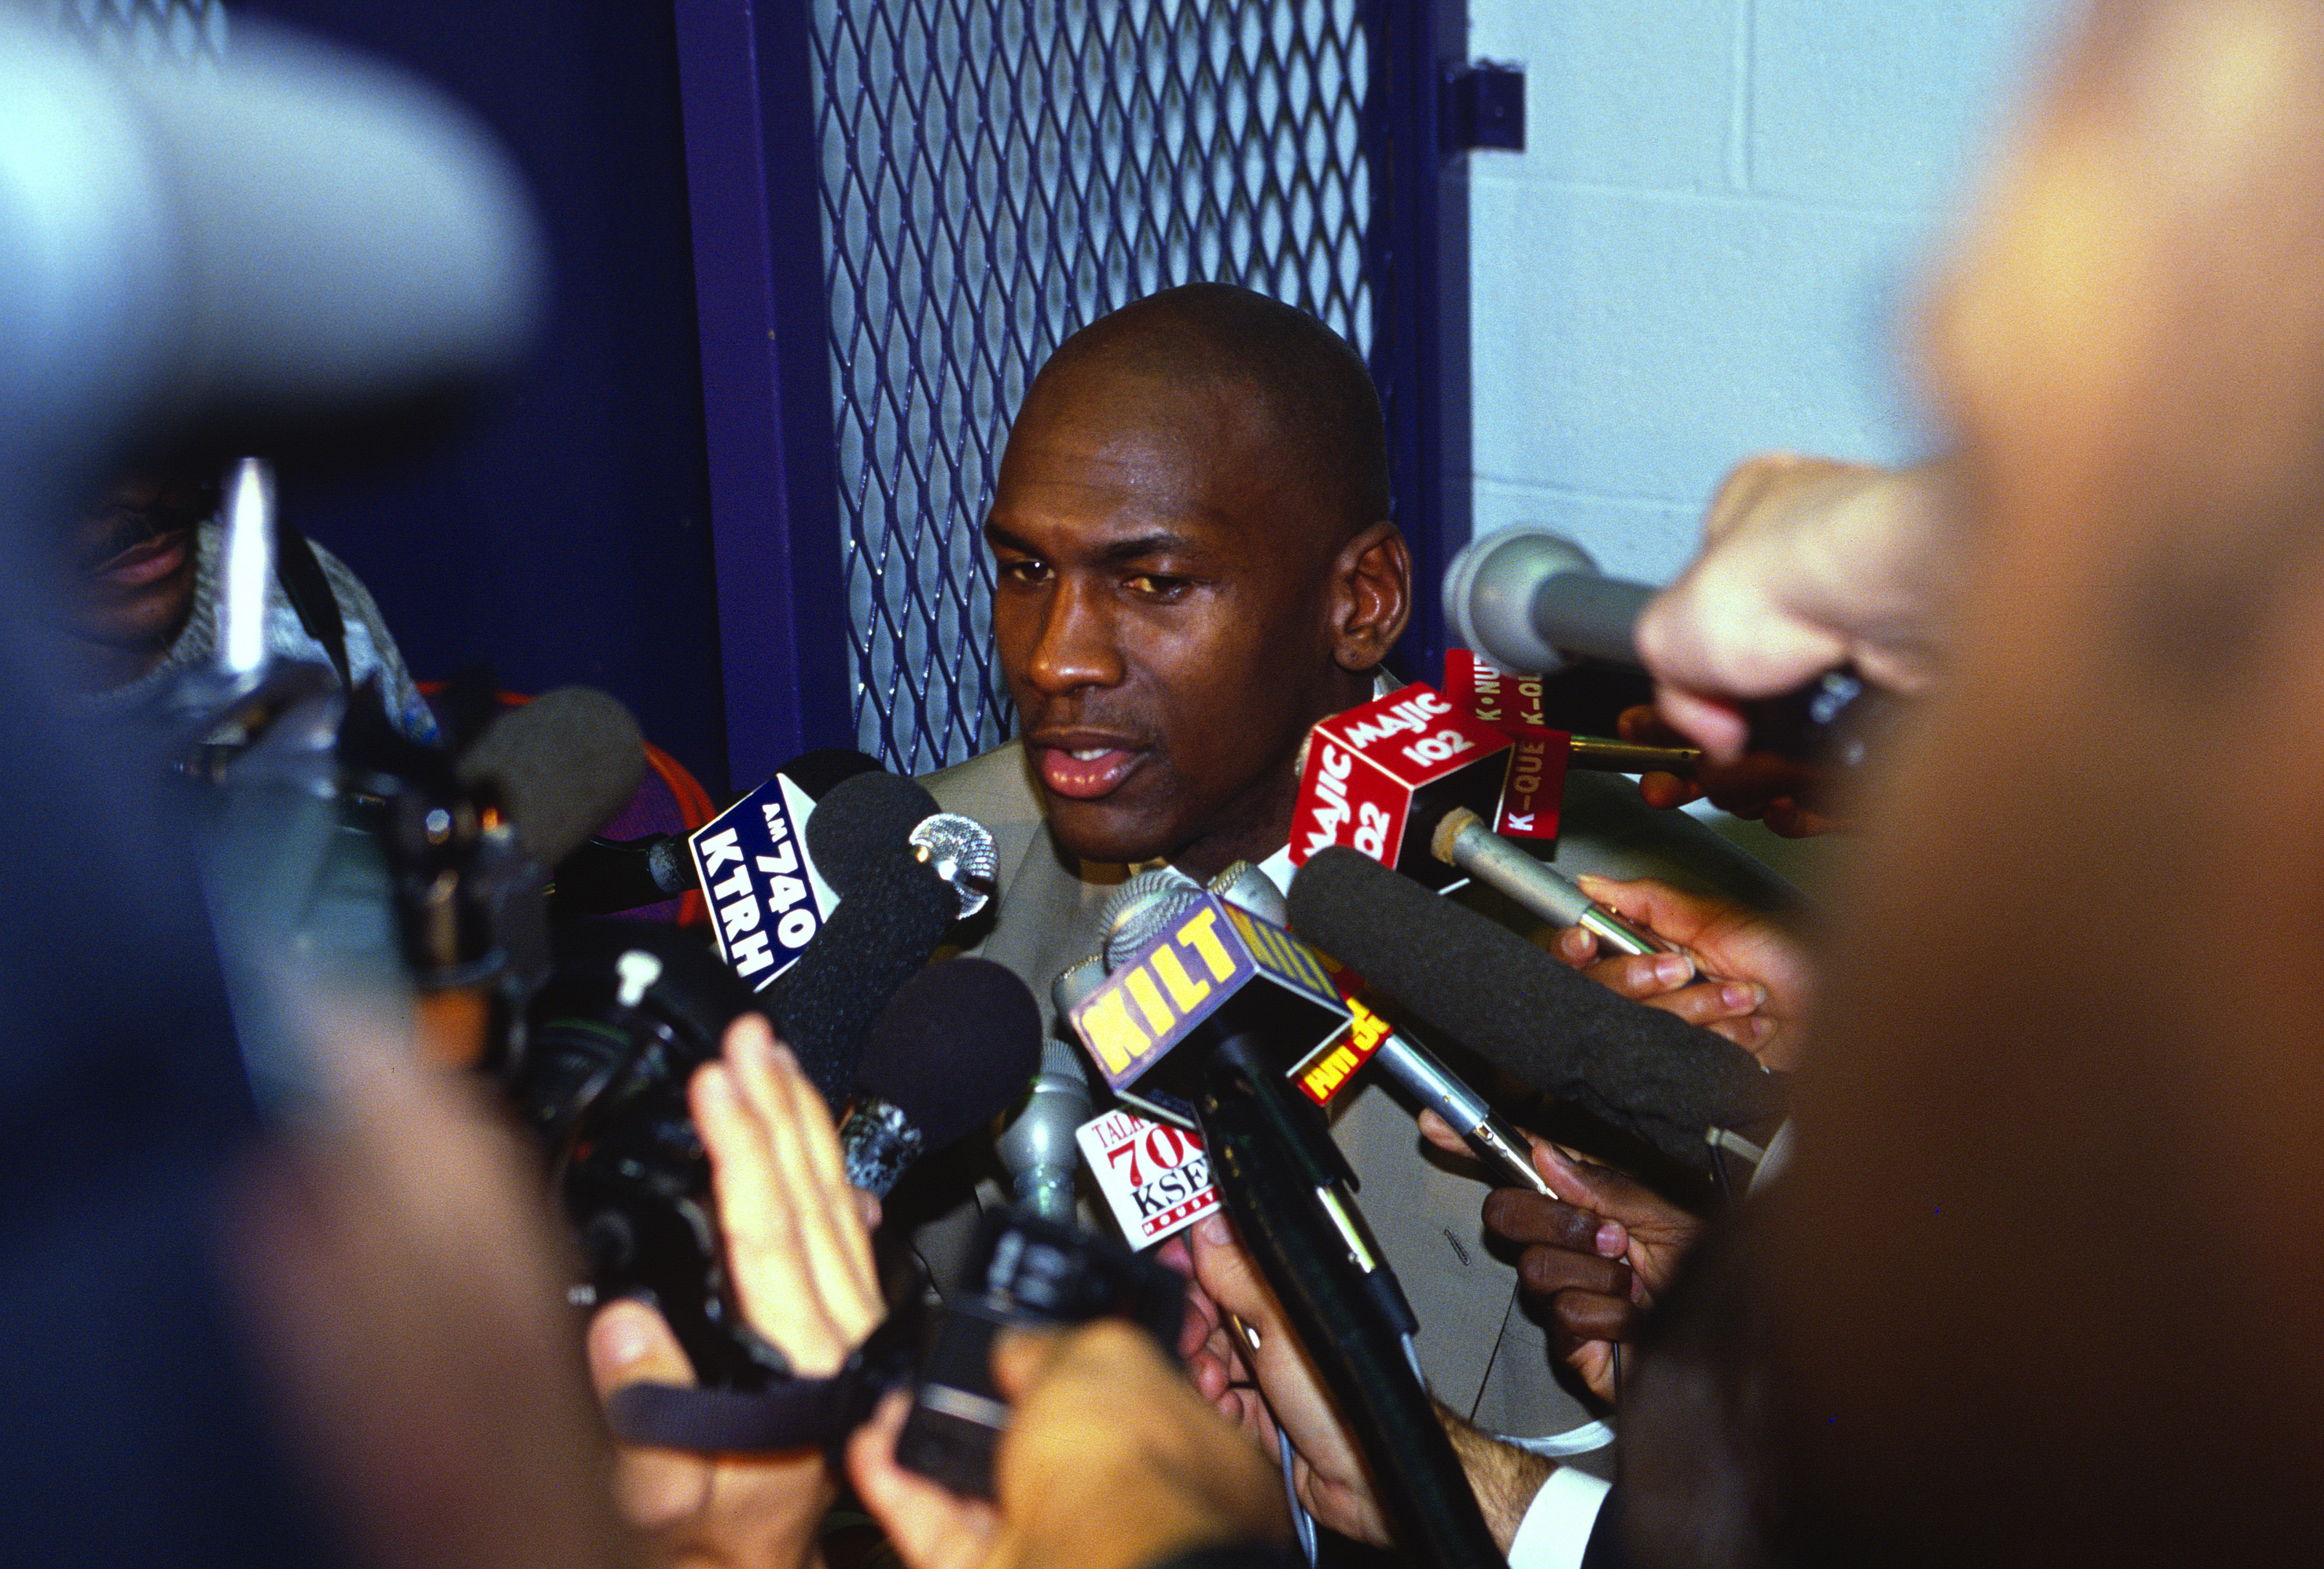 Michael Jordan's 1992 Comment About a Helicopter Crash Eerily Foretold Kobe Bryant's Tragic Death 28 Years Later